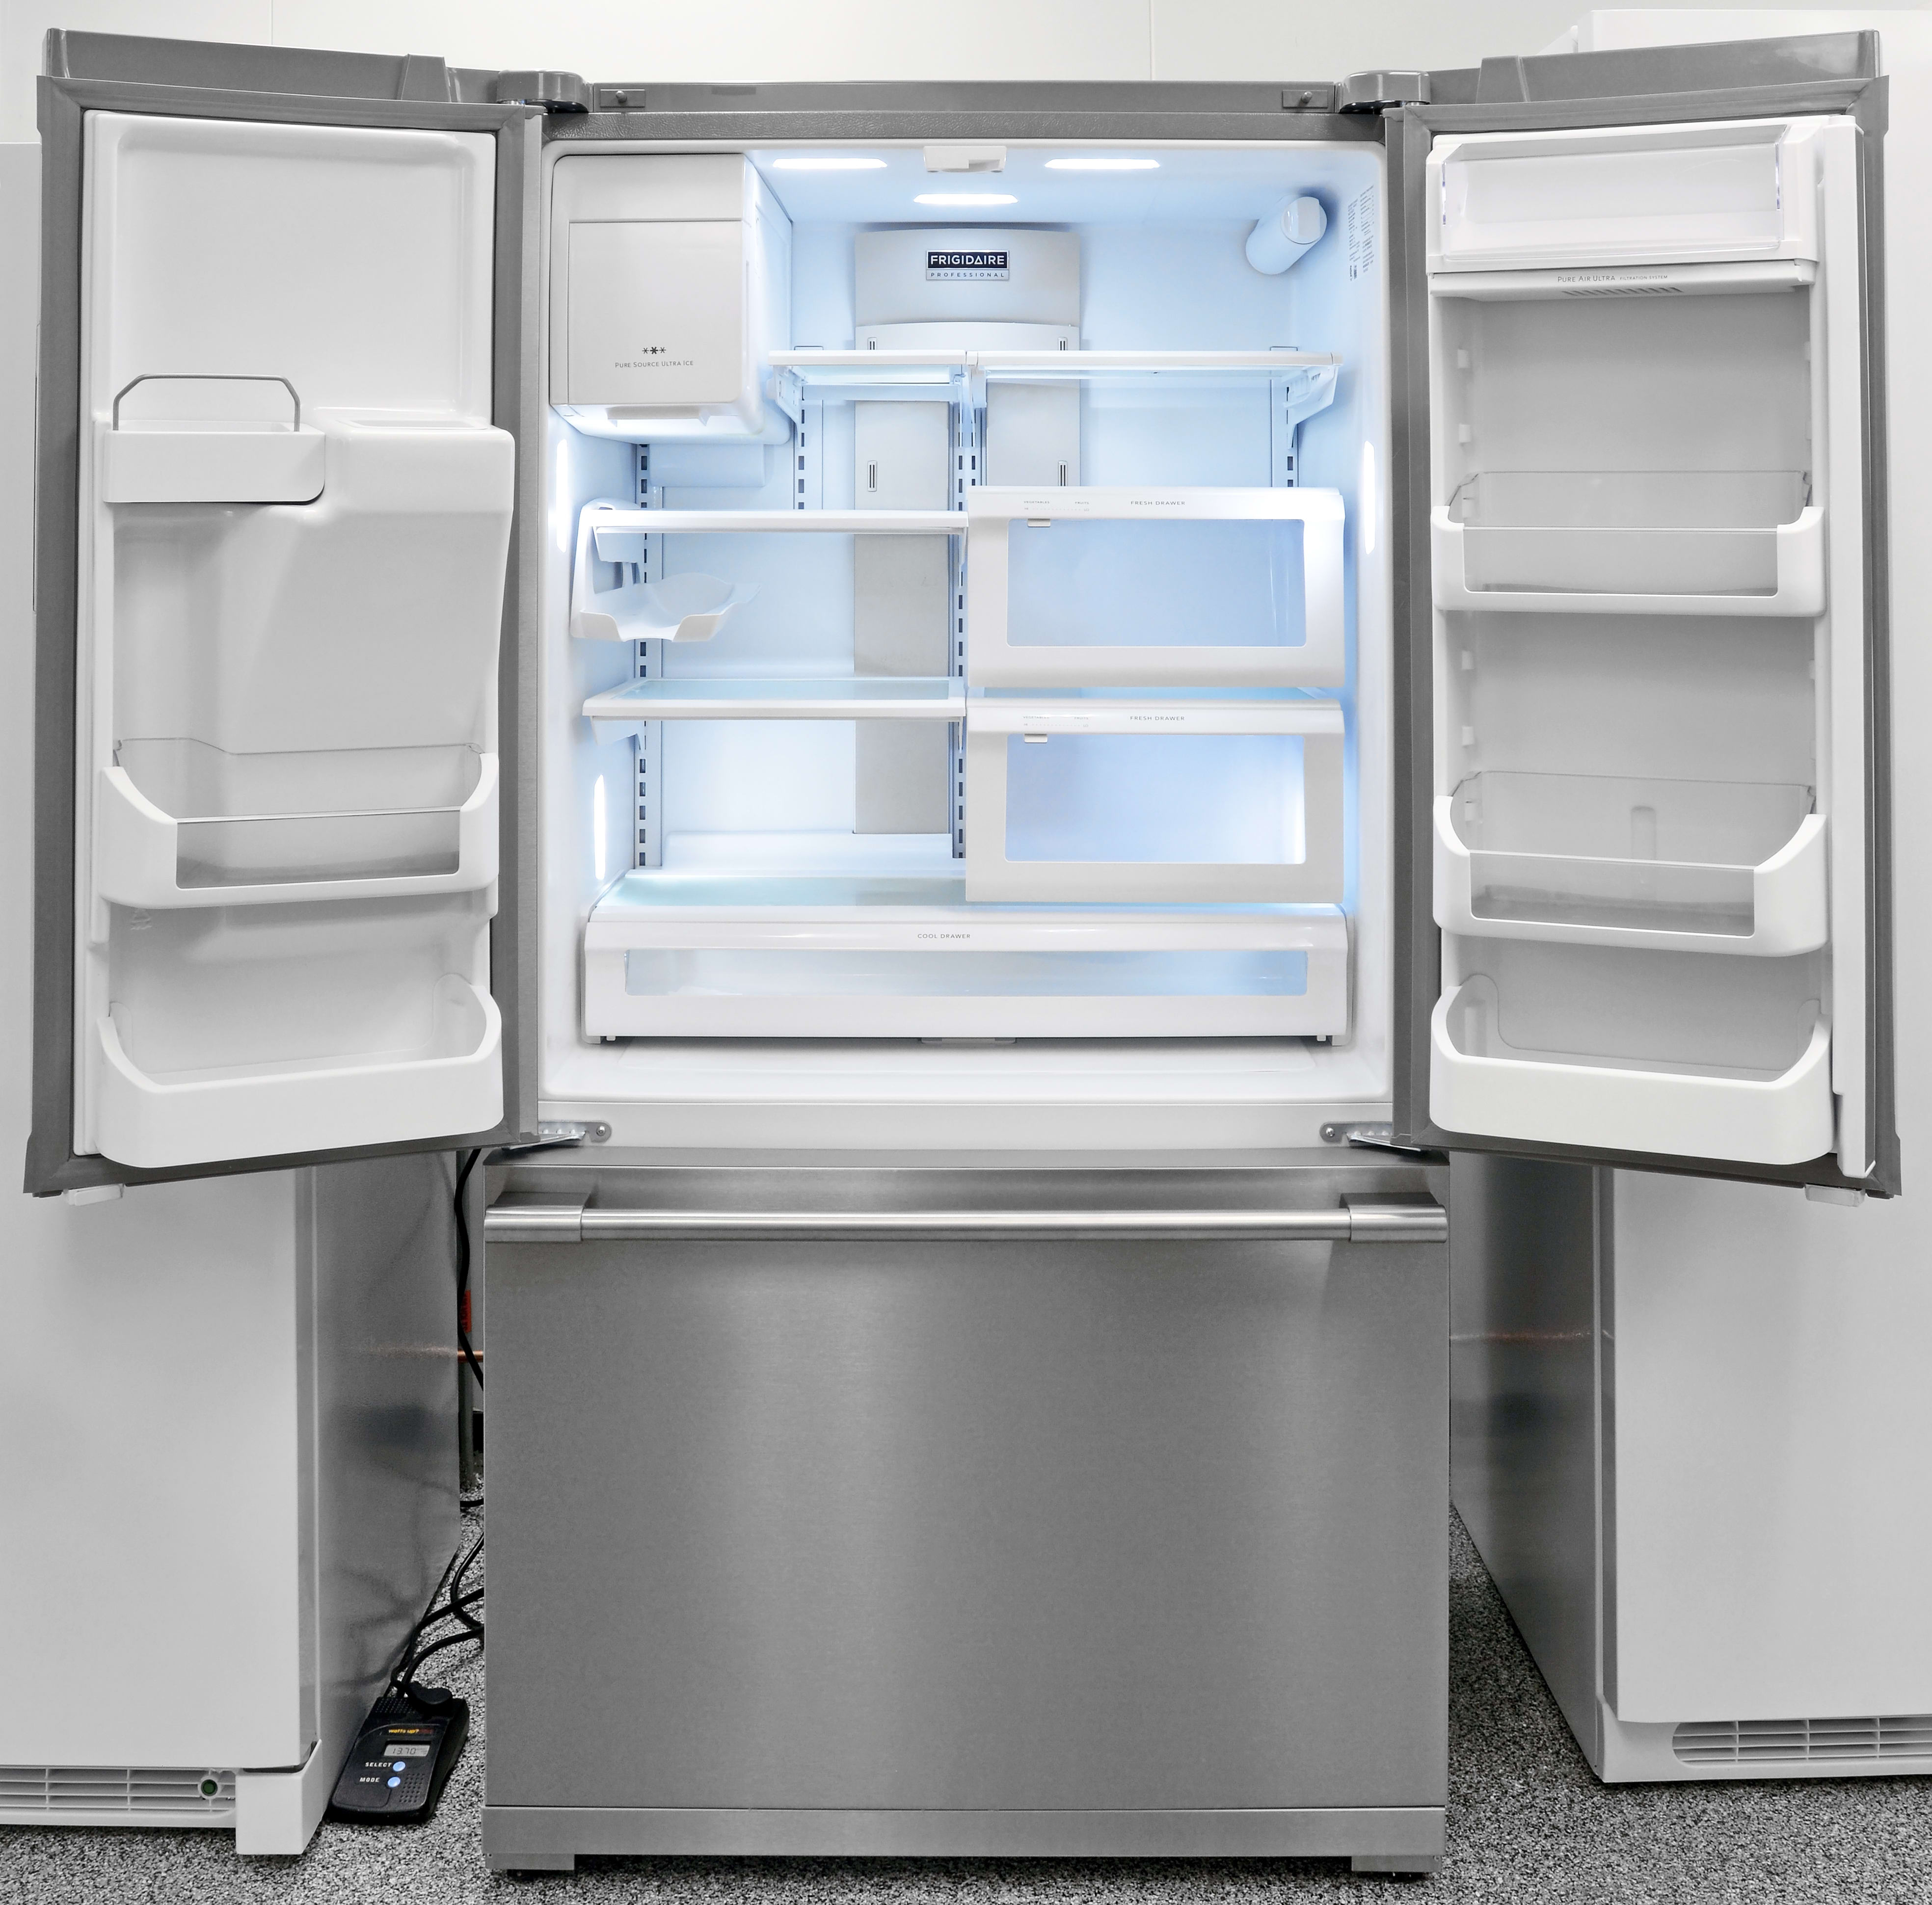 The Frigidaire Professional FPBC2277RF is large enough to hold lots of food, but shallow enough that everything is always accessible.